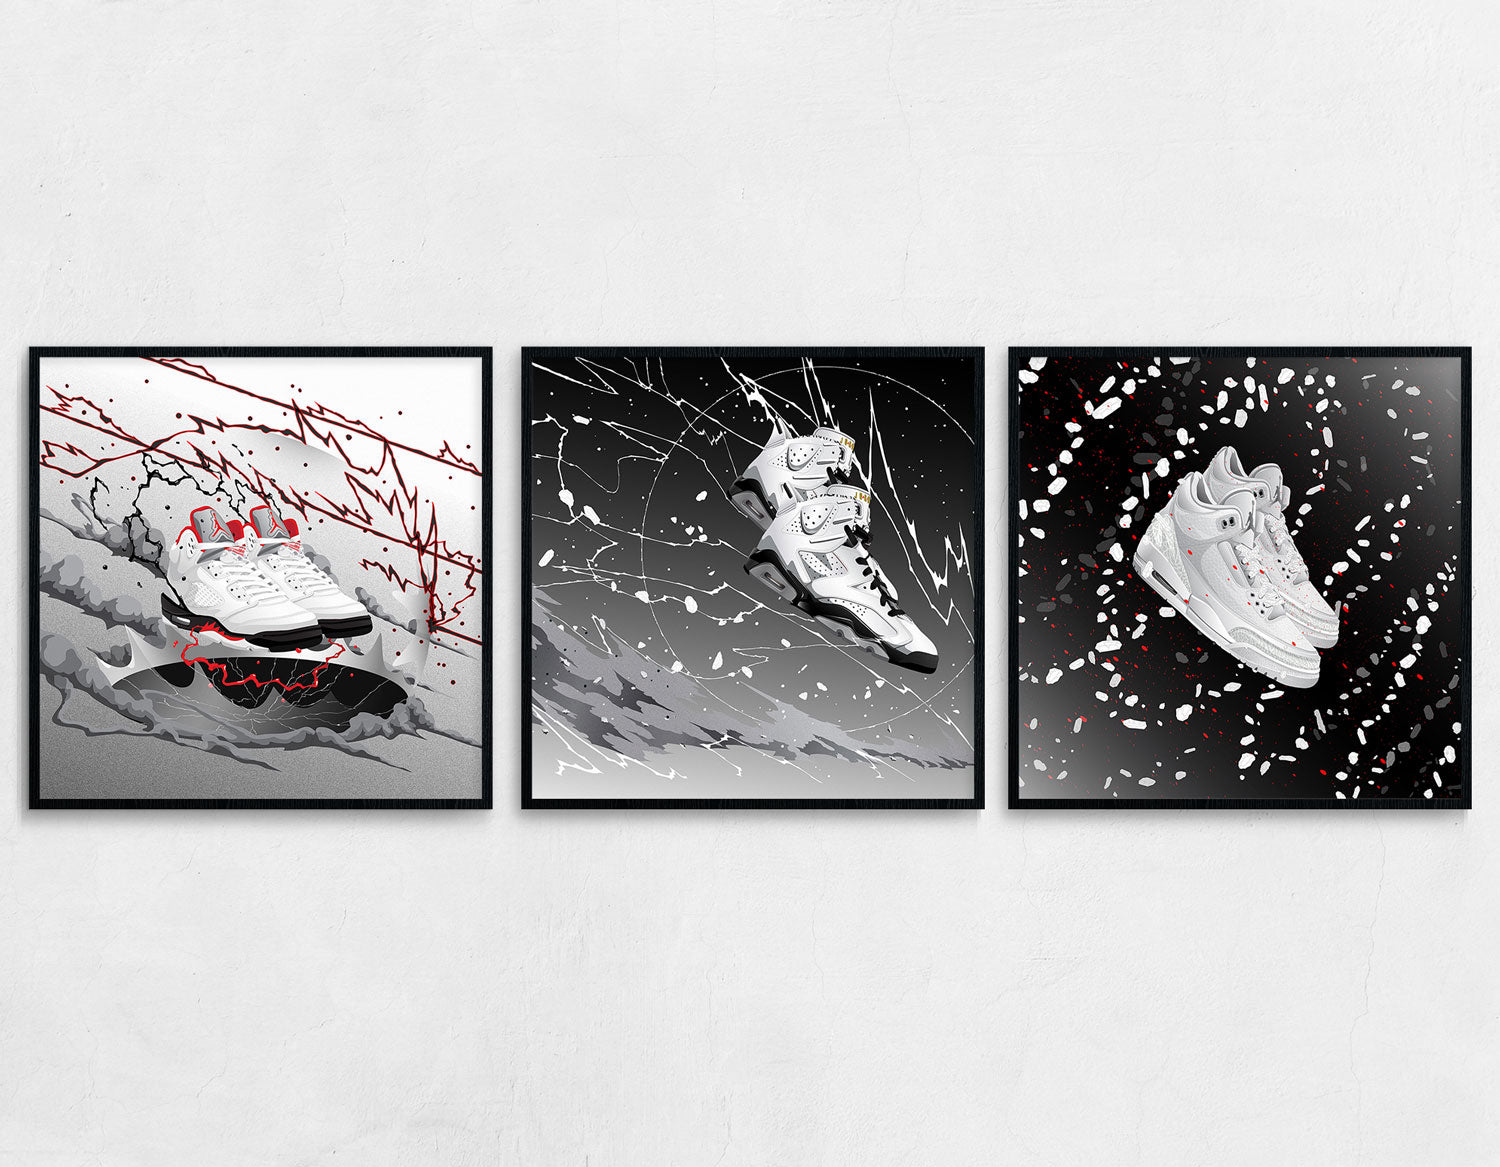 A 3 Piece combination of the framed medium sized Sneaker art prints